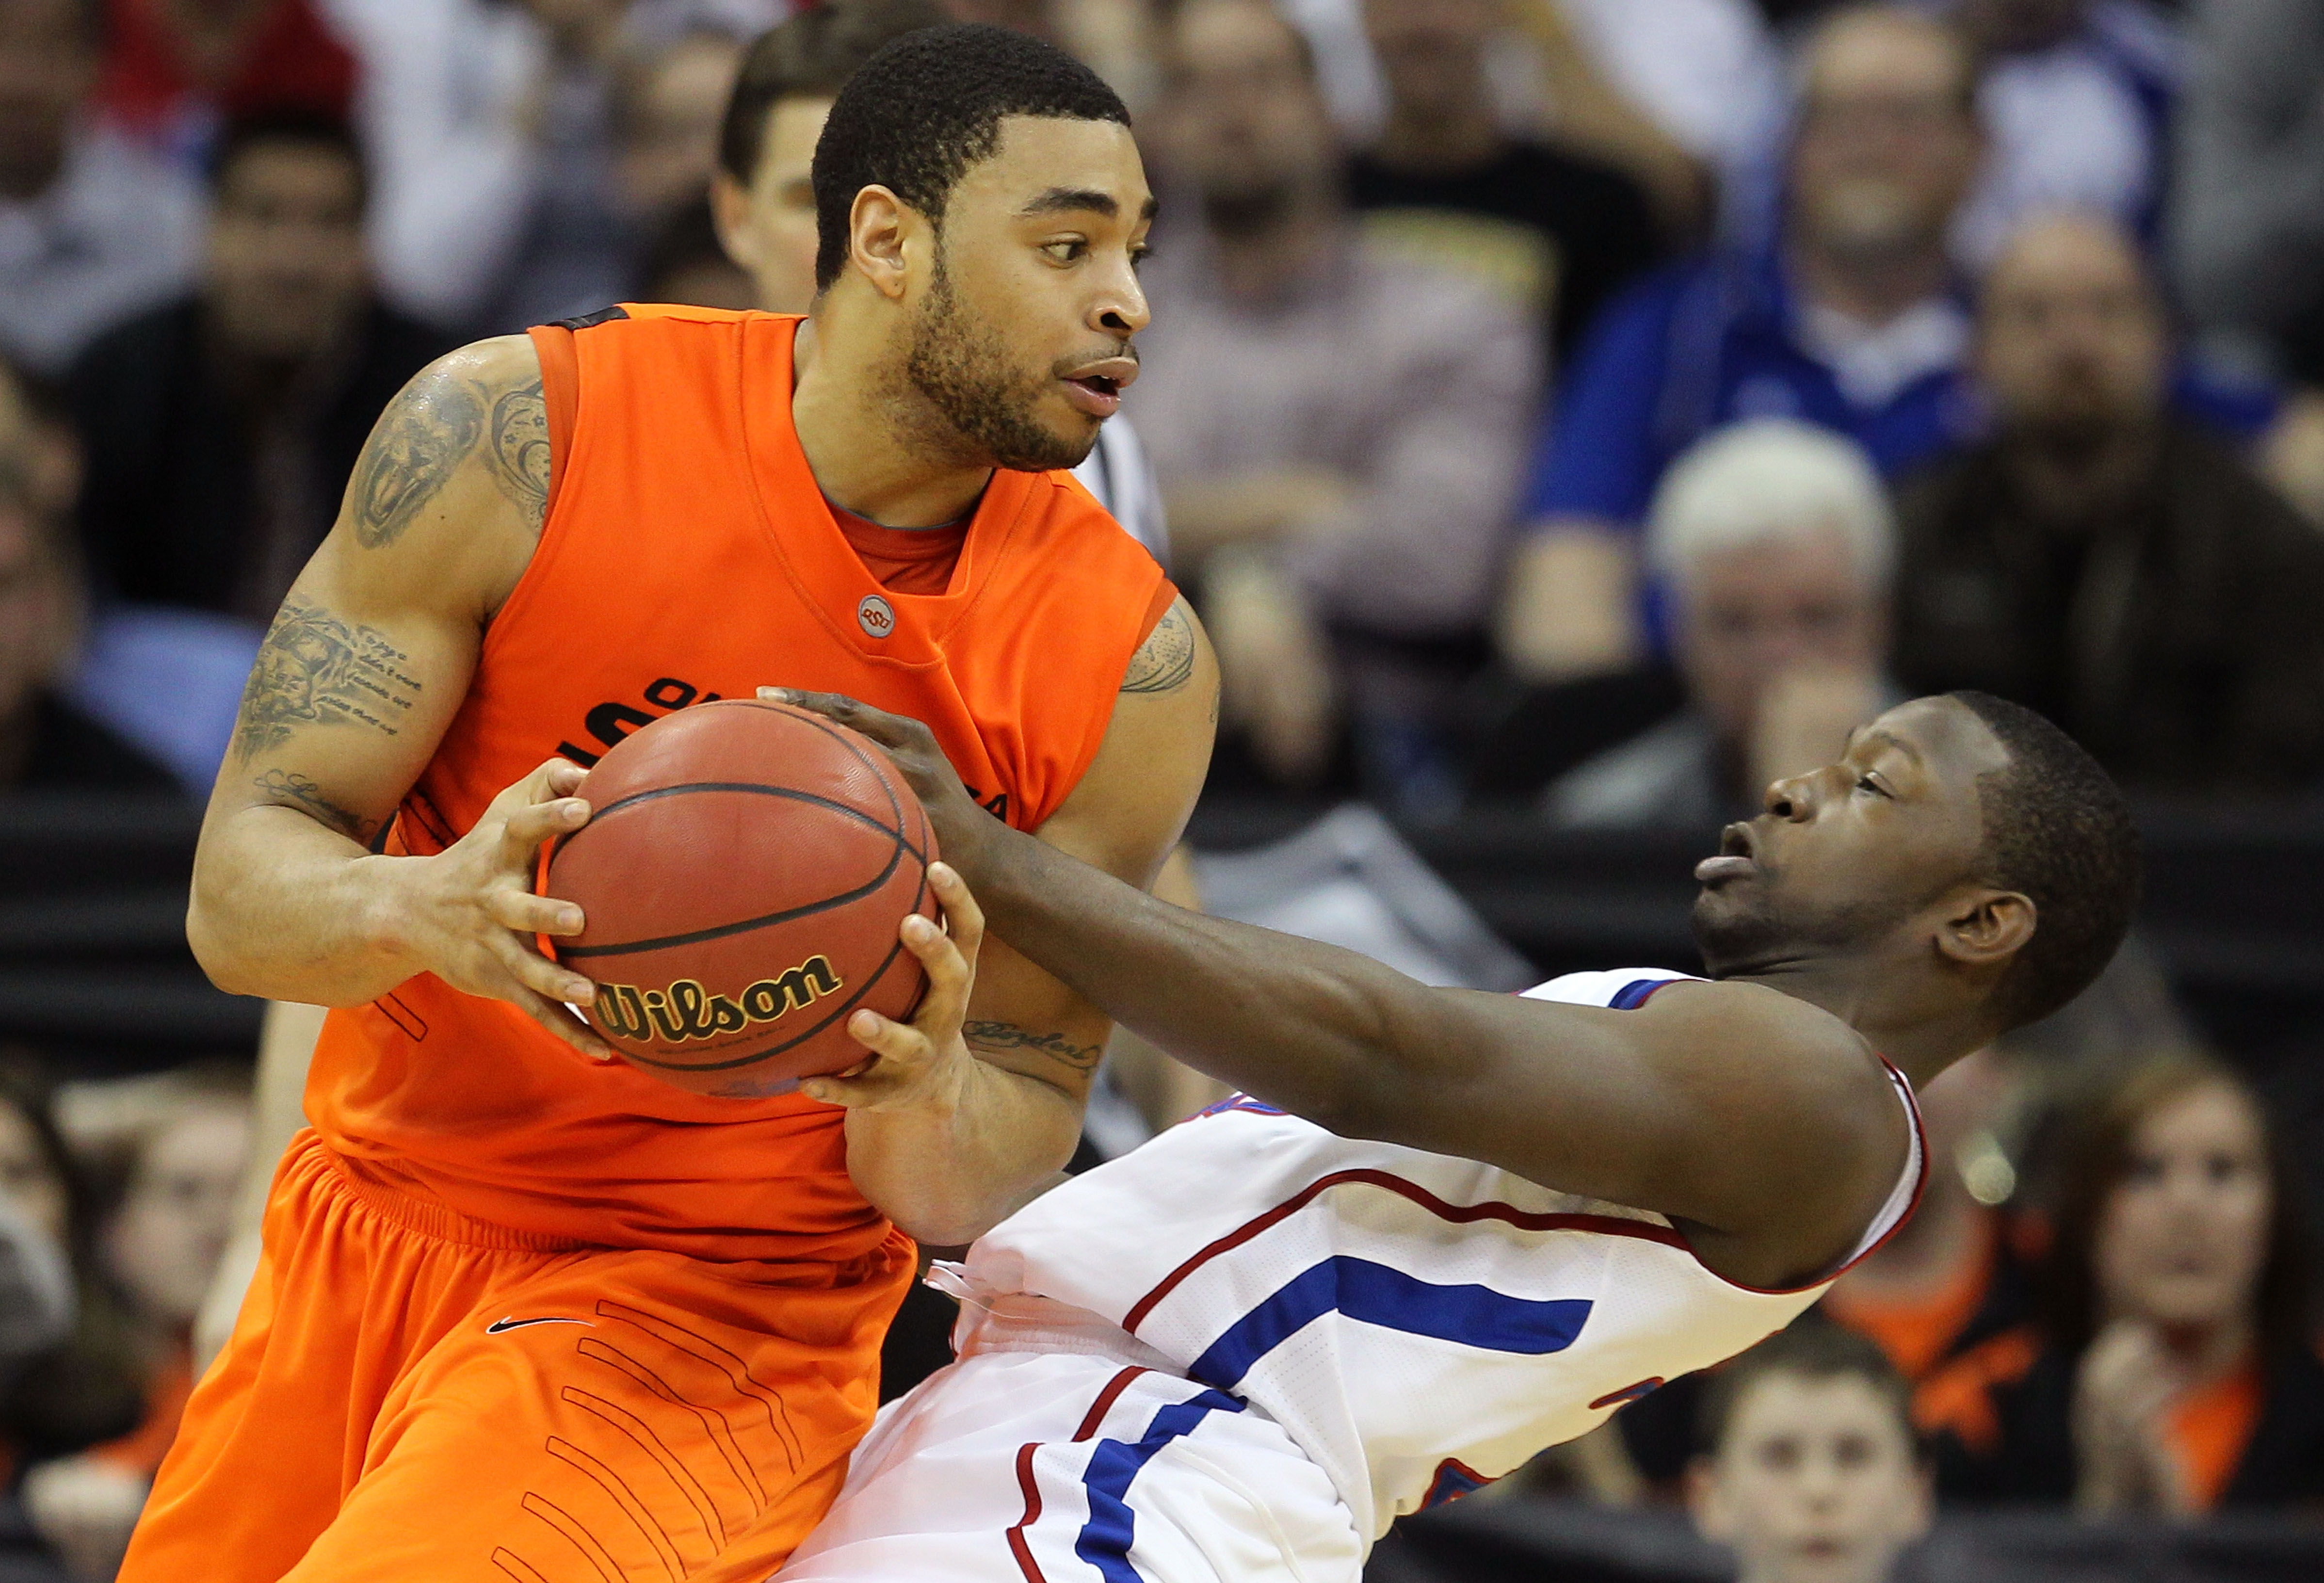 KANSAS CITY, MO - MARCH 10:  Marshall Moses #33 of the Oklahoma State Cowboys drives with the ball on Mario Little #23 of the Kansas Jayhawks during their quarterfinal game in the 2011 Phillips 66 Big 12 Men's Basketball Tournament at Sprint Center on Mar